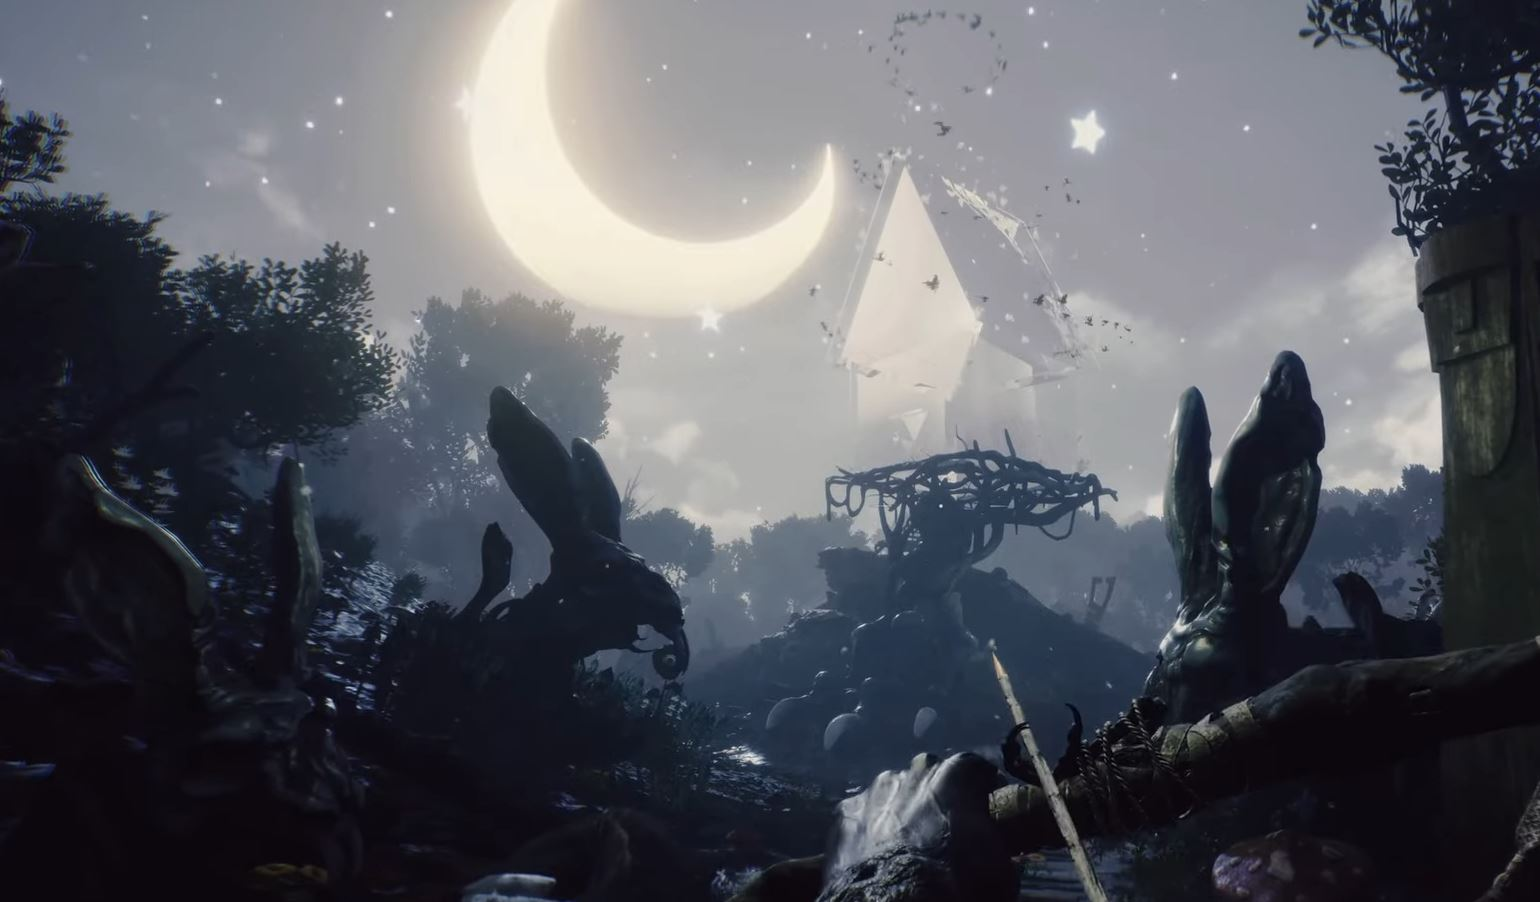 blacktail-is-a-spiritual-fantasy-adventure-coming-to-ps5-this-winter